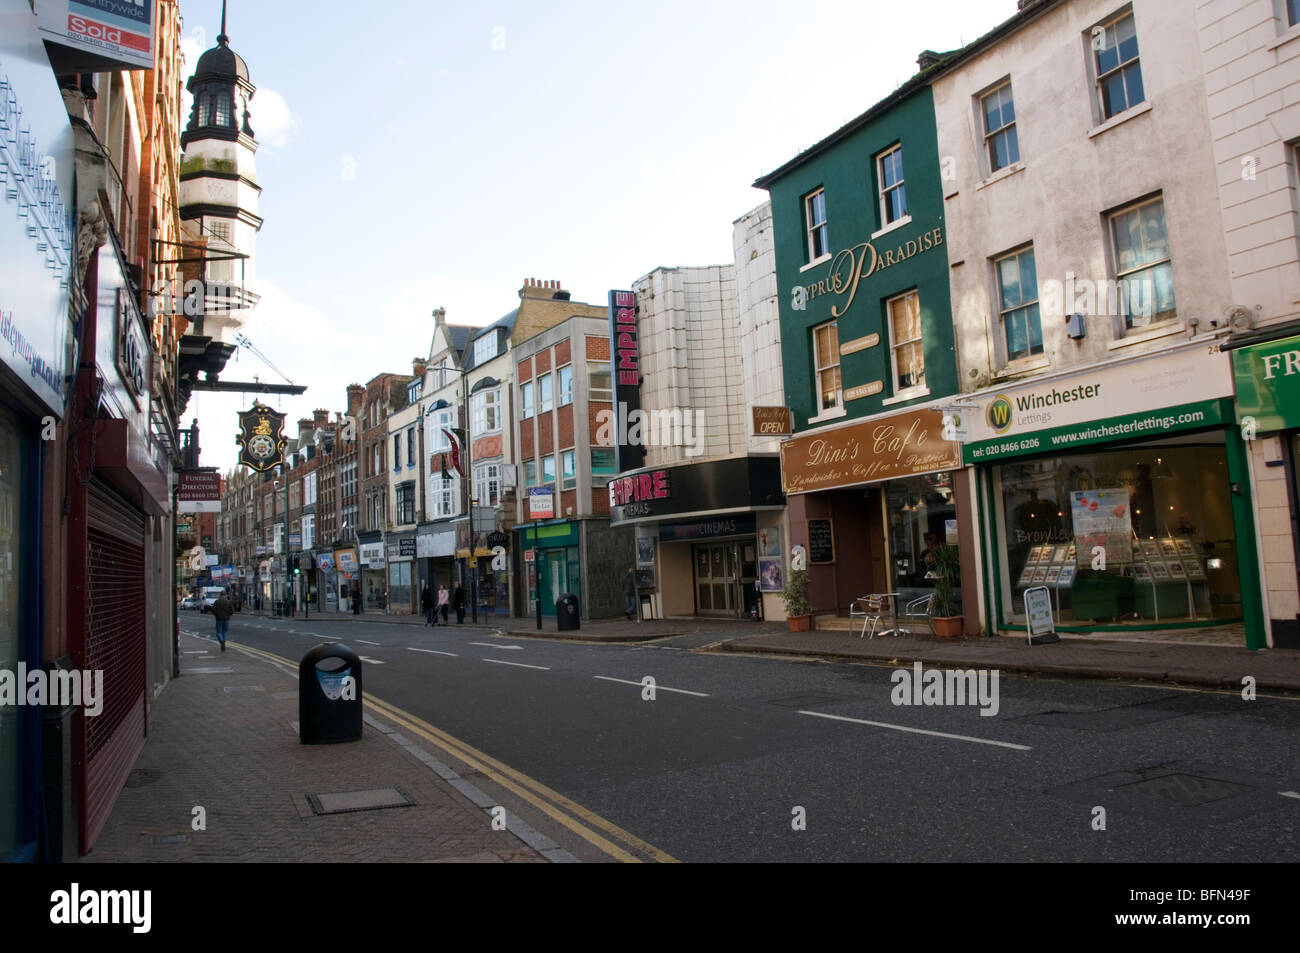 High street bromley kent england stock photo royalty for The bromley